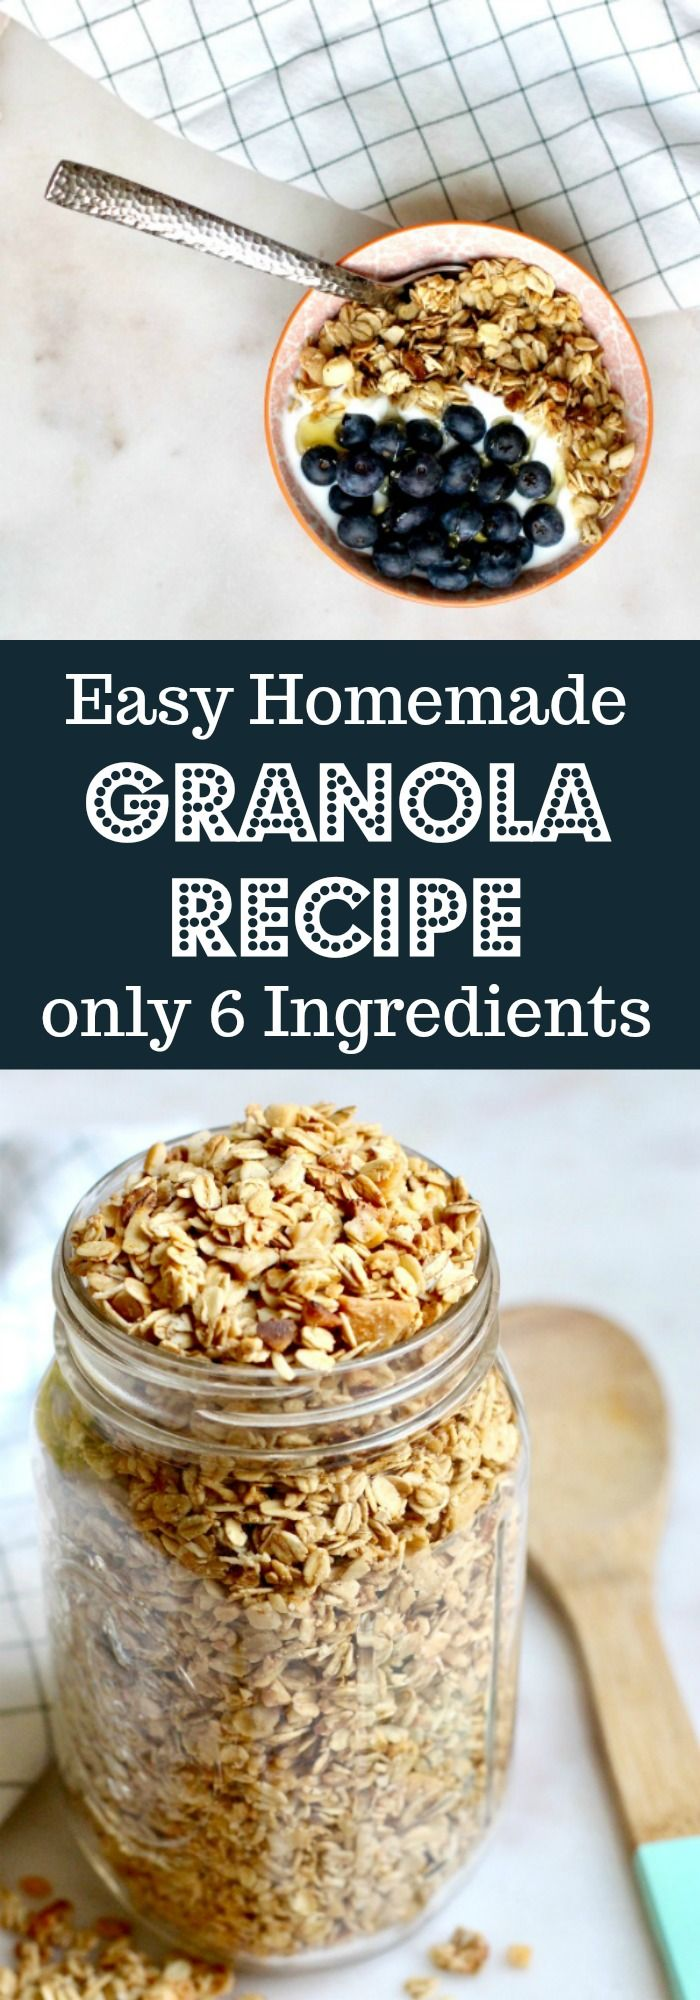 This healthy granola recipe is the perfect thing to make for easy breakfasts like parfaits and yogurt bowls. It is vanilla flavored, simple, uses maple to sweeten it and if you use the proper oats it is also gluten free. You can add any nuts but almond slices are my personal favorite. DIY Easy Homemade Granola Recipe  from Rainbow Delicious